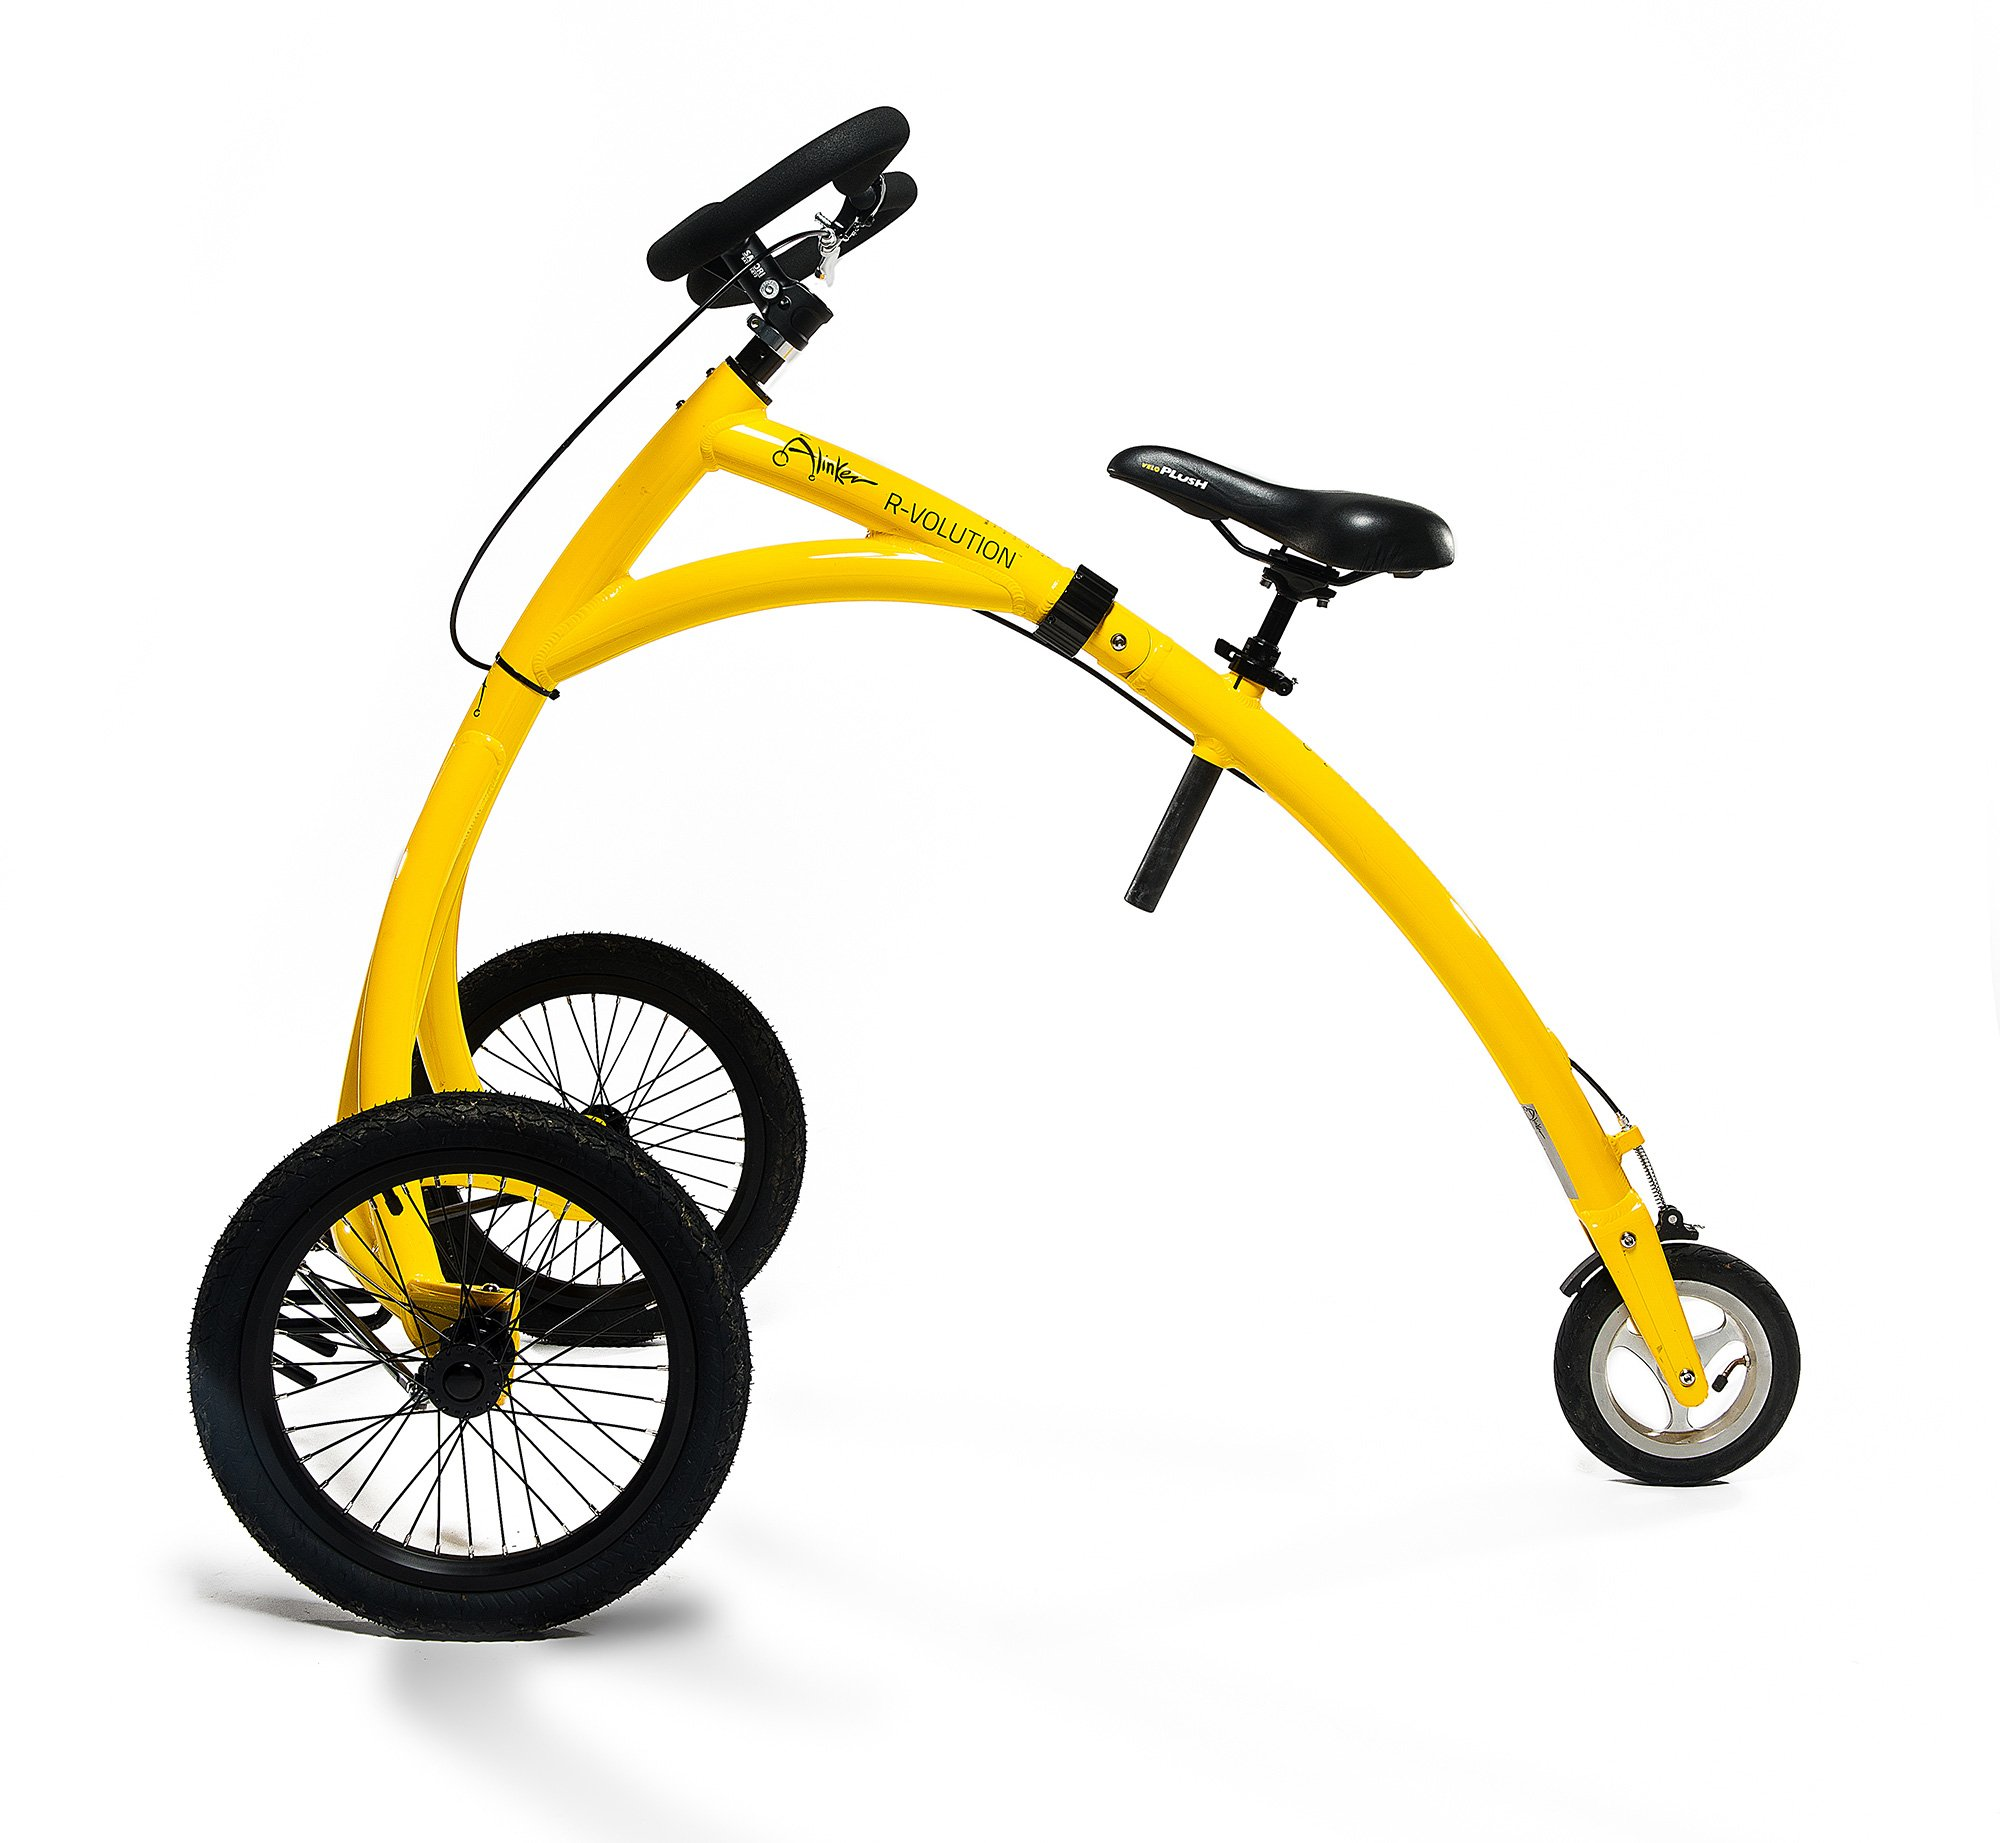 The Alinker Walking Bike – Alinker USA